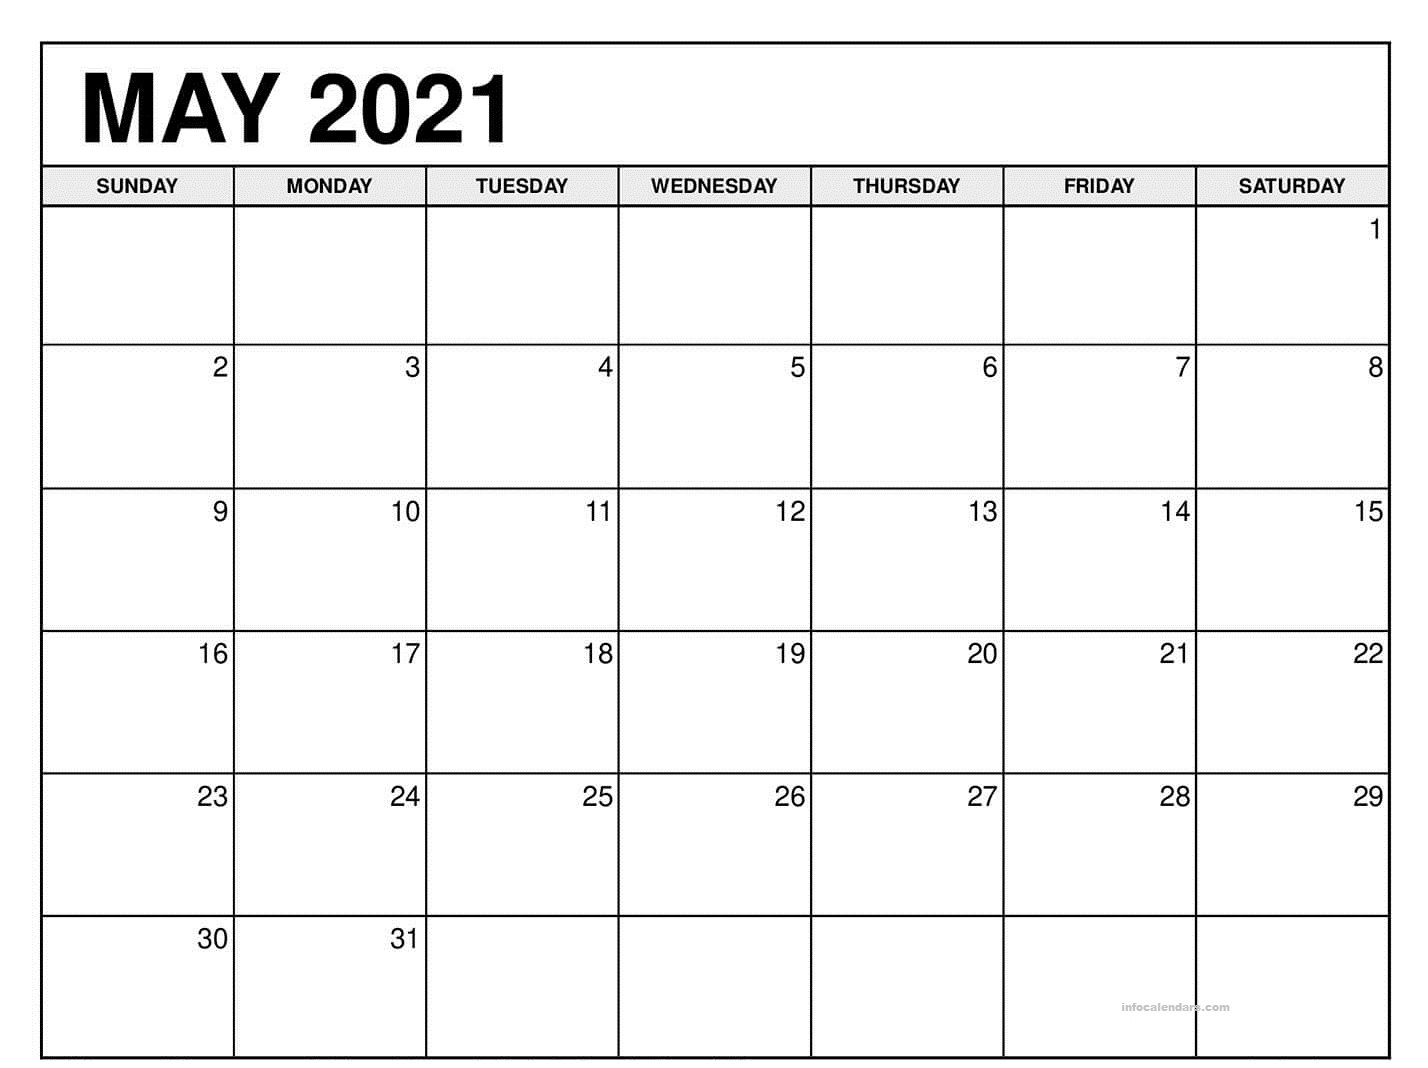 May 2021 Calendar With Holidays Images